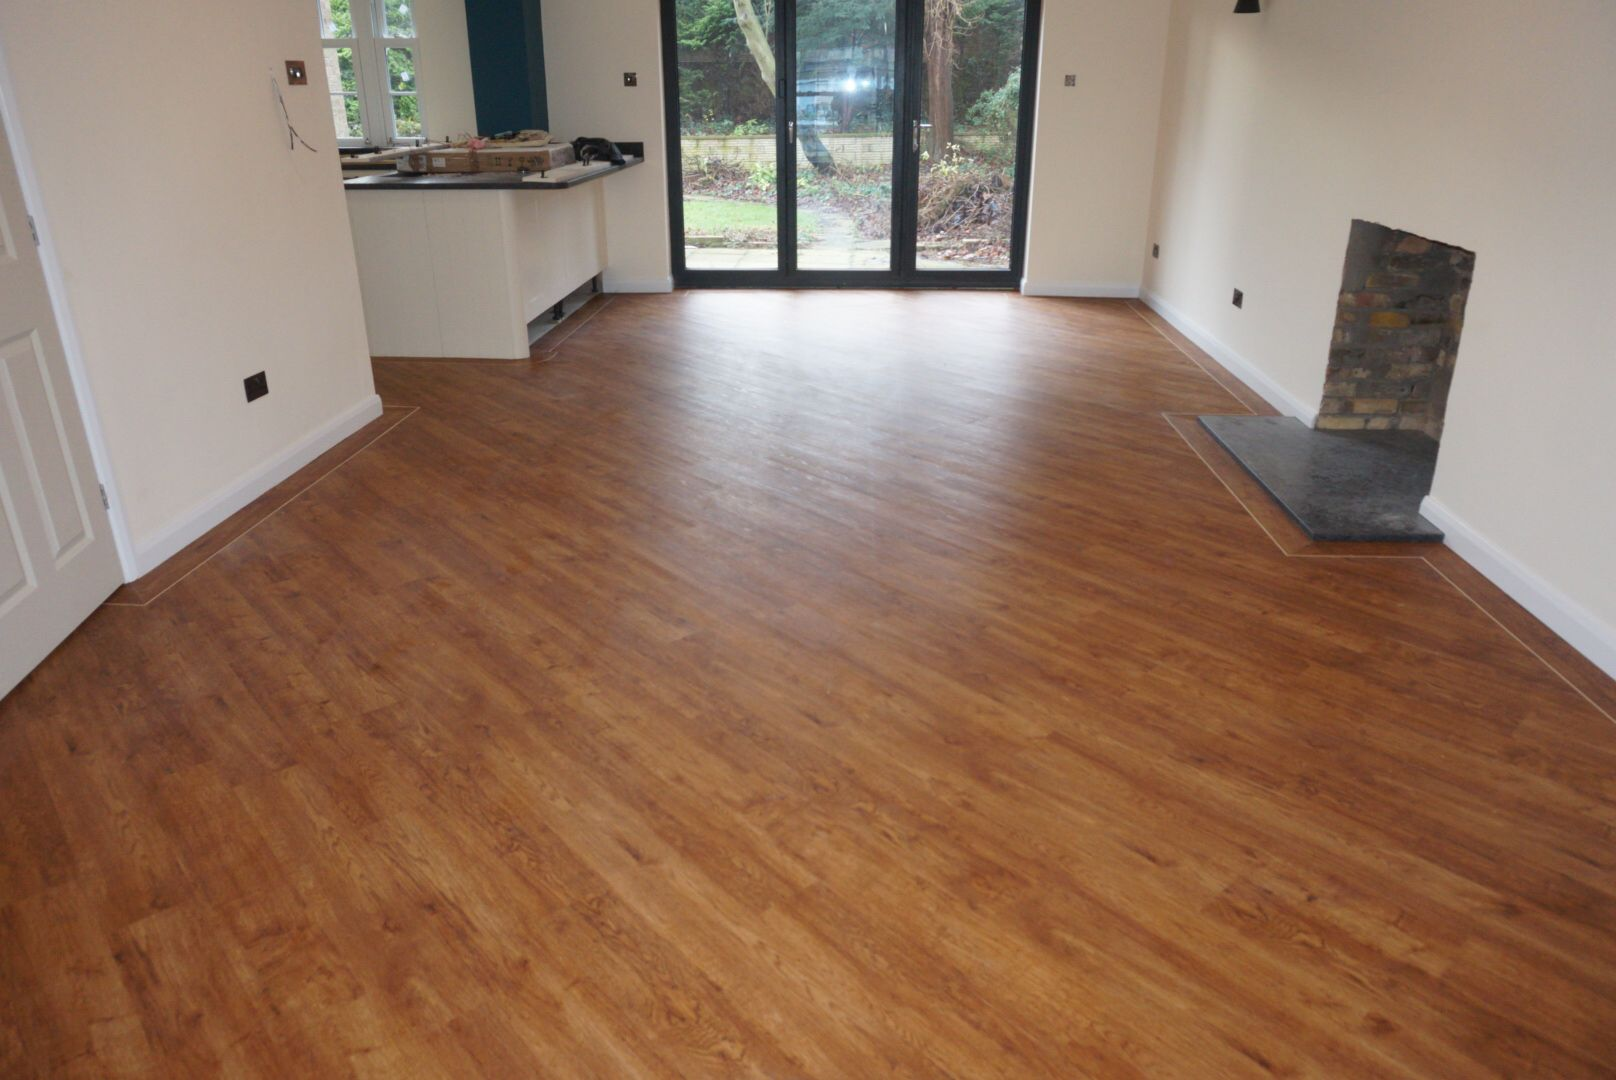 Polyflor lvt design vinyl tile flooring wood plank camaro circle polyflor lvt design vinyl tile flooring wood plank camaro circle feature mitre boarder ideas fitted by dailygadgetfo Image collections